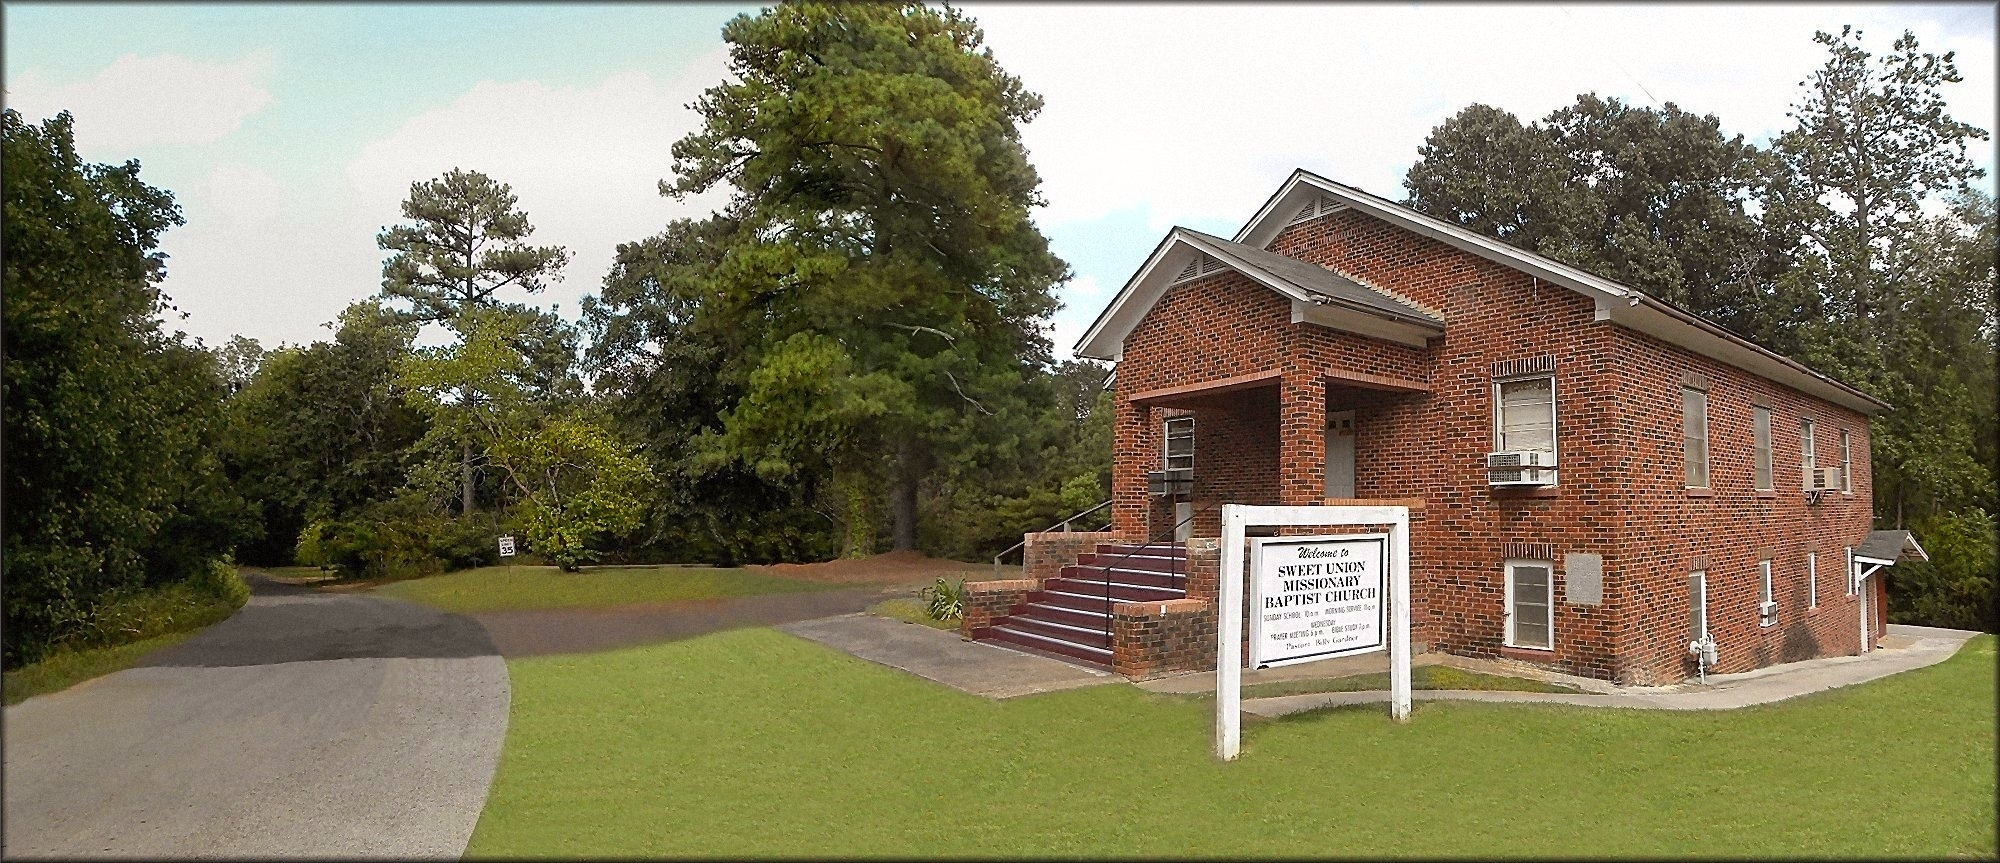 Sweet Union Missionary Baptist Church in Historic Nacogdoches County